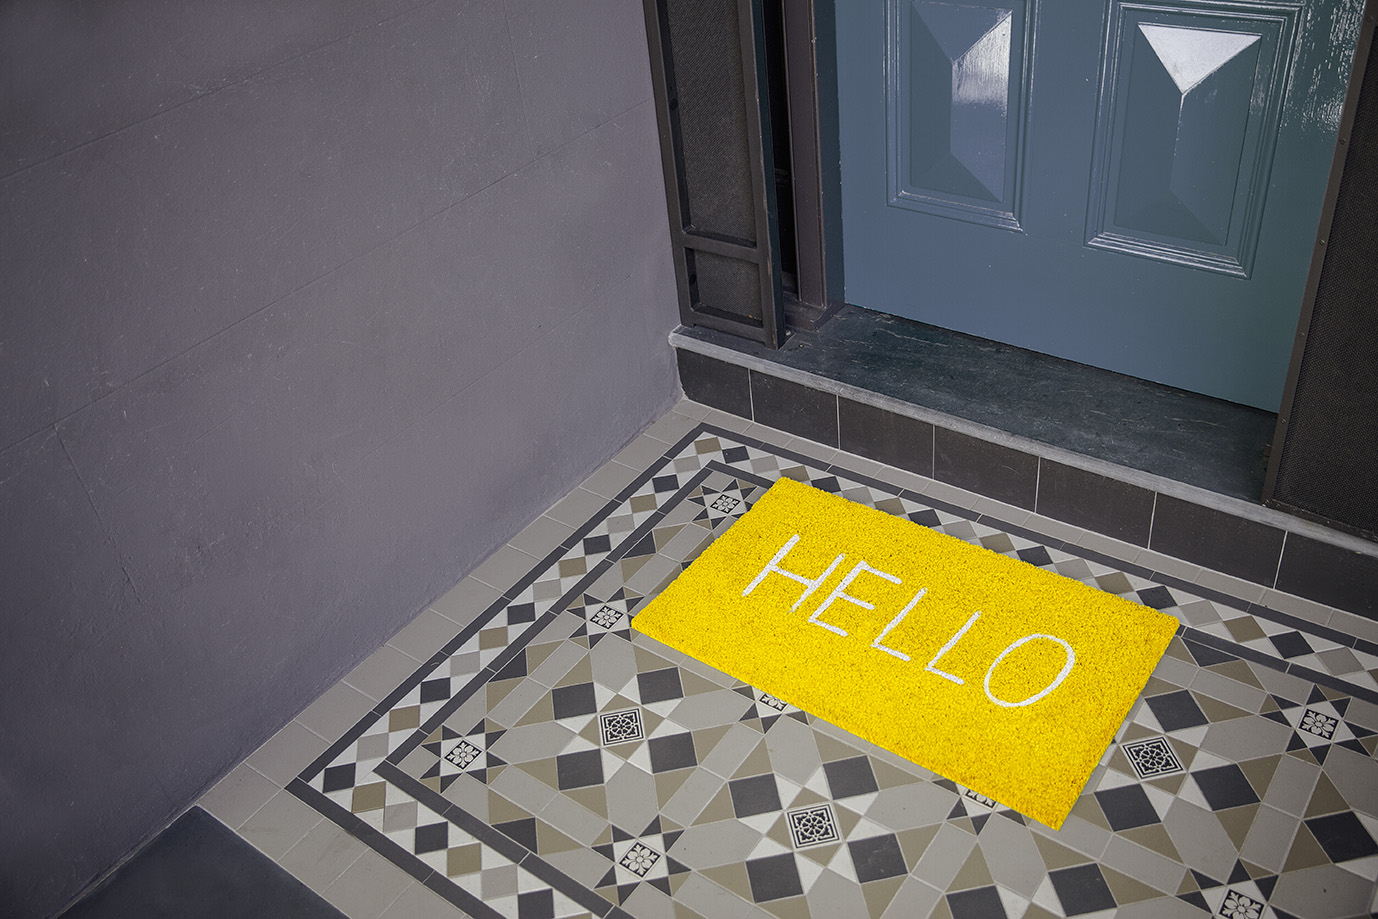 Doormat image (Hello) - Ray White_Know How - Landscape - Low res.jpg